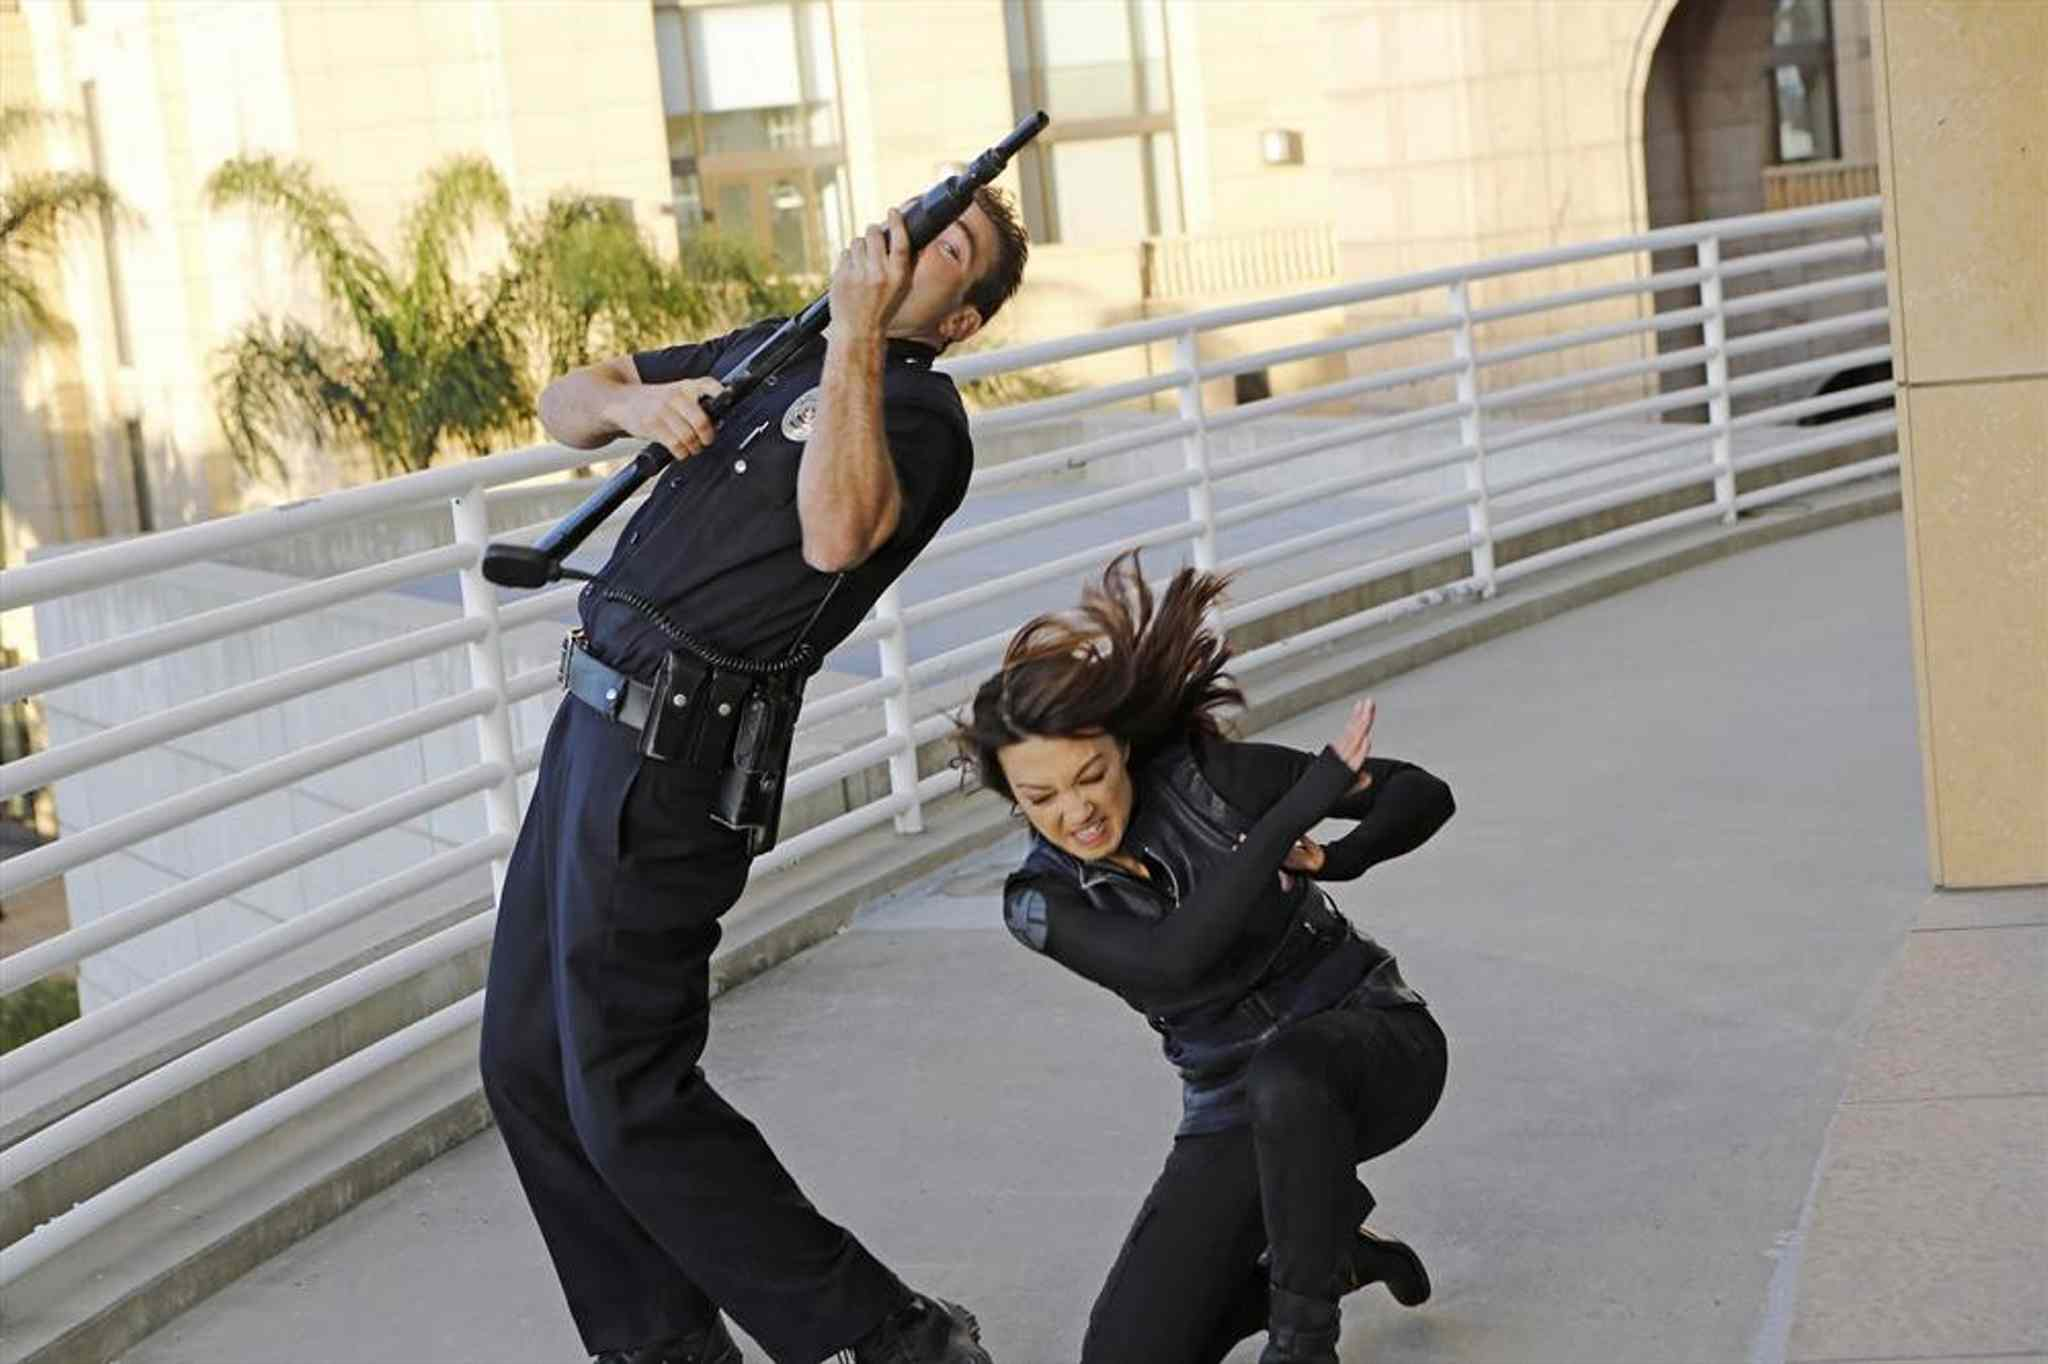 Above, Sam Hargrave and Ming-Na Wen in Marvel's Agents of S.H.I.E.L.D.